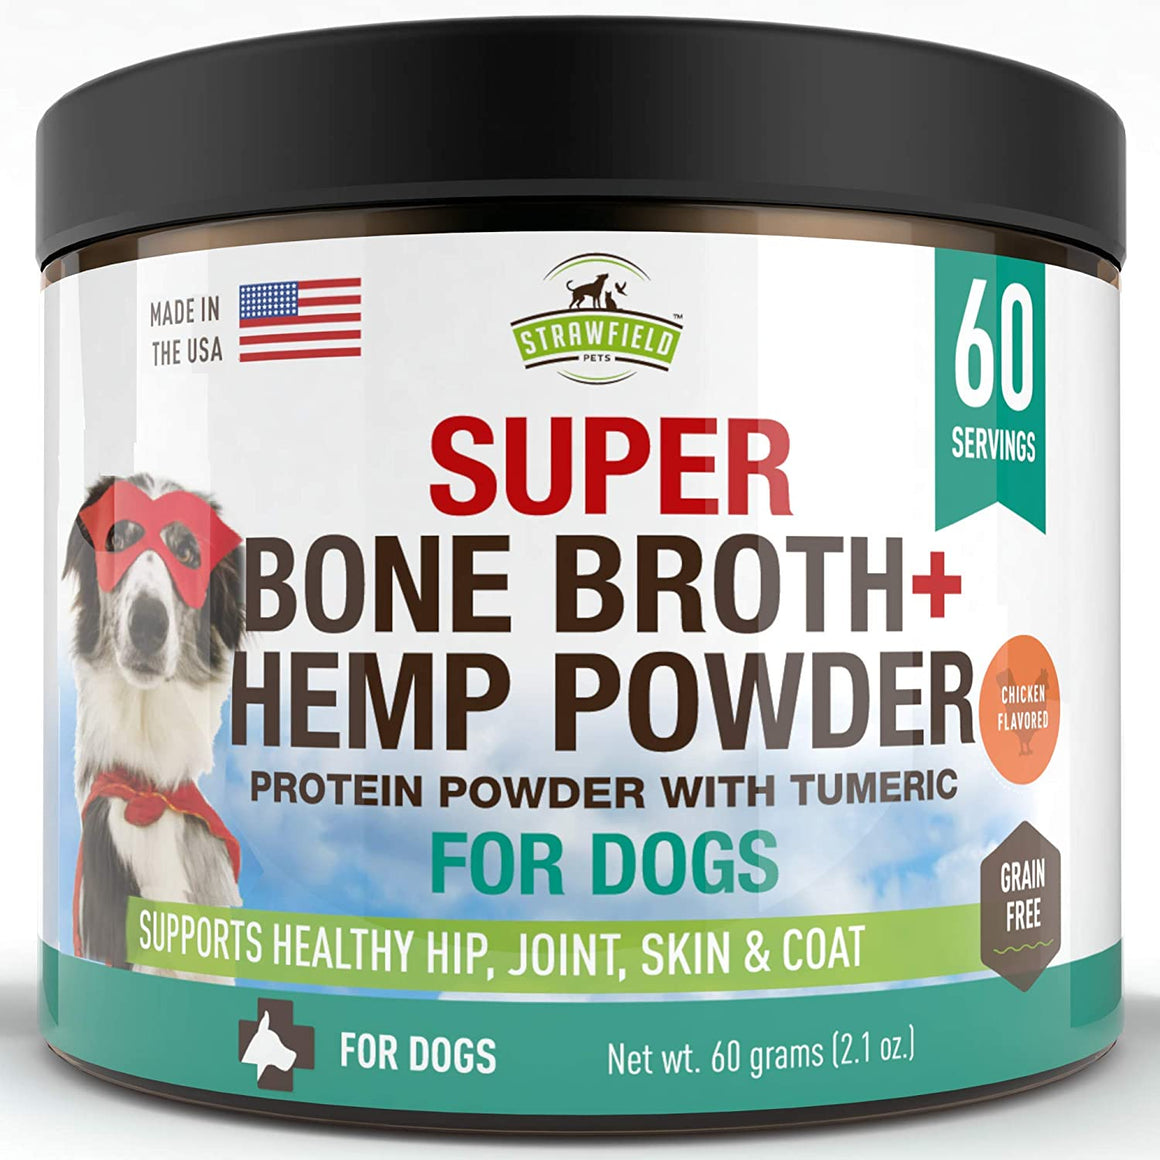 Powdered Bone Broth for Dogs - 60 servings, Chicken Flavor - Dog Food Topper w/Organic Turmeric, Hemp Protein Powder, Pumpkin, Glucosamine Chondroitin for Joint Support Arthritis Pain Relief